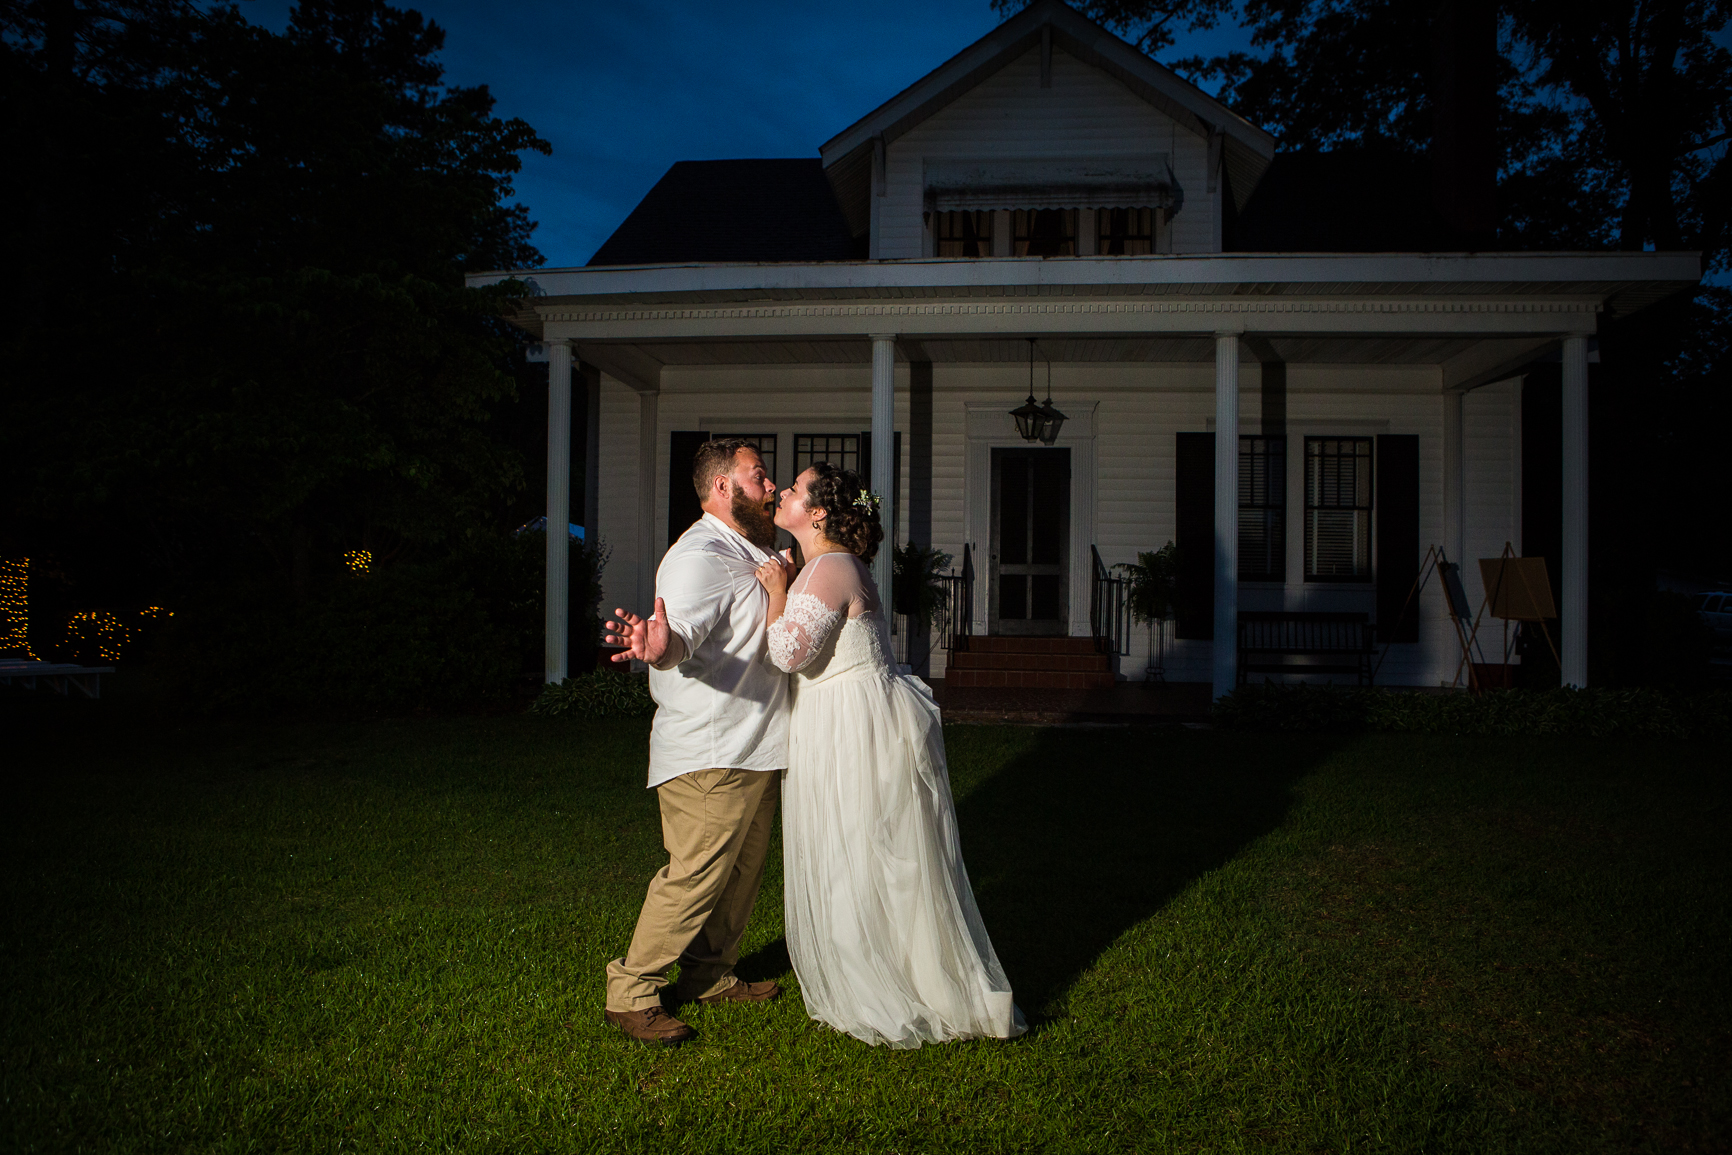 101 studio llc -Raleigh bride and groom portrait 8.jpg